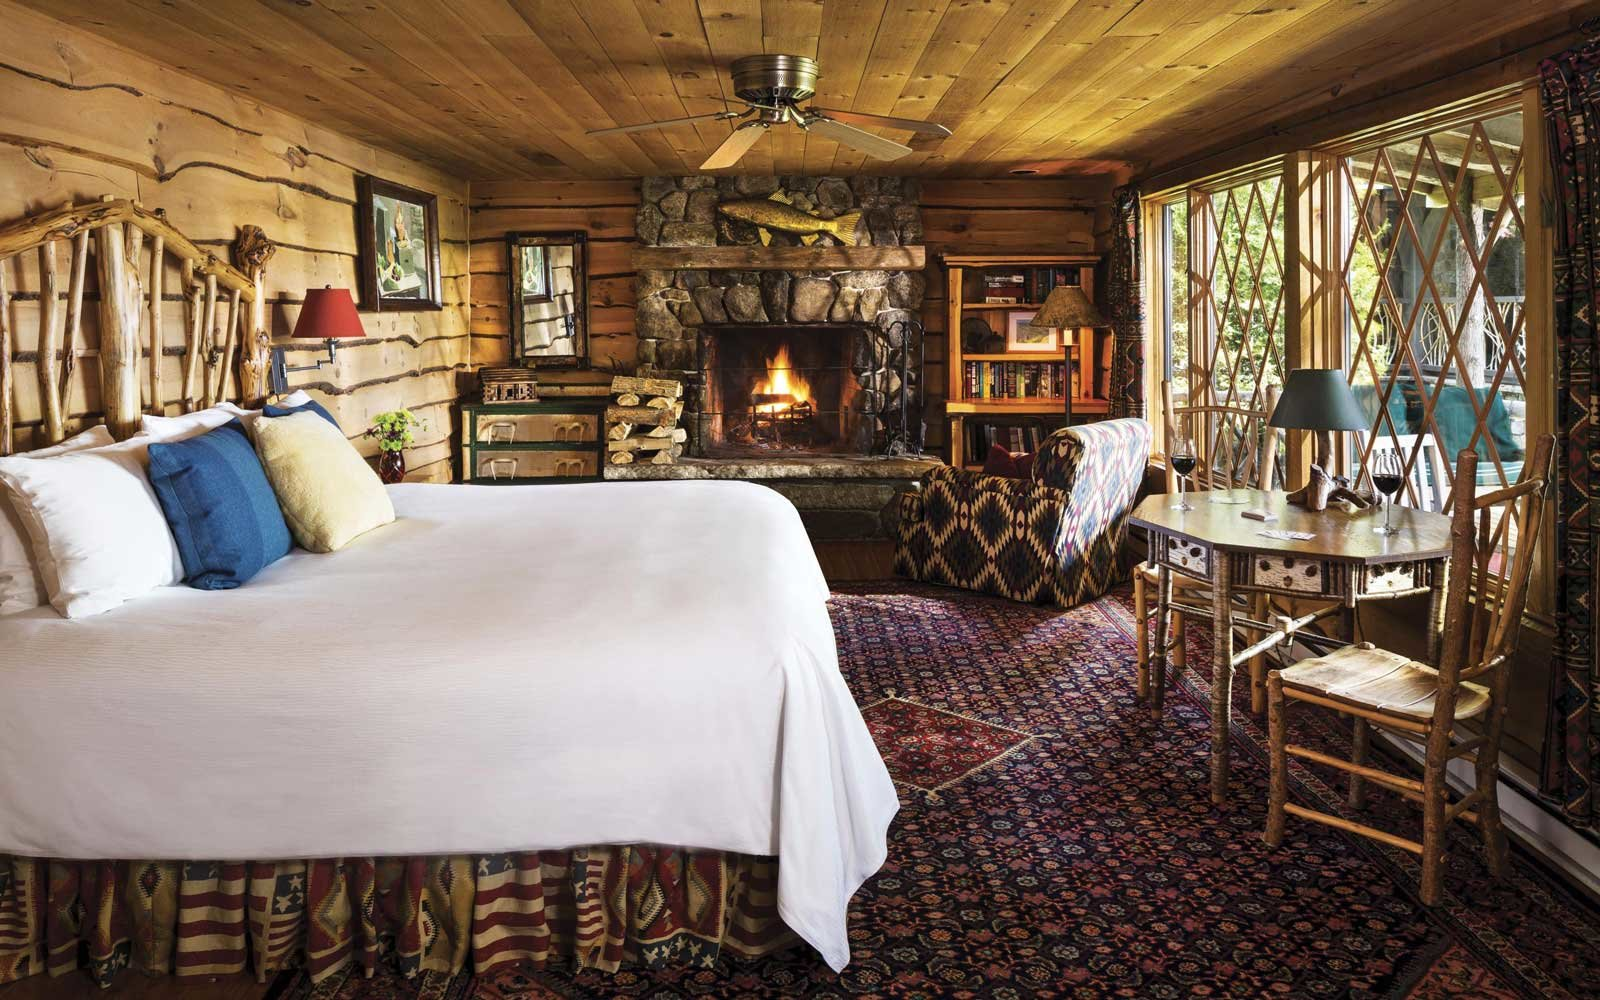 Cabin at the Lake Placid Lodge in upstate New York